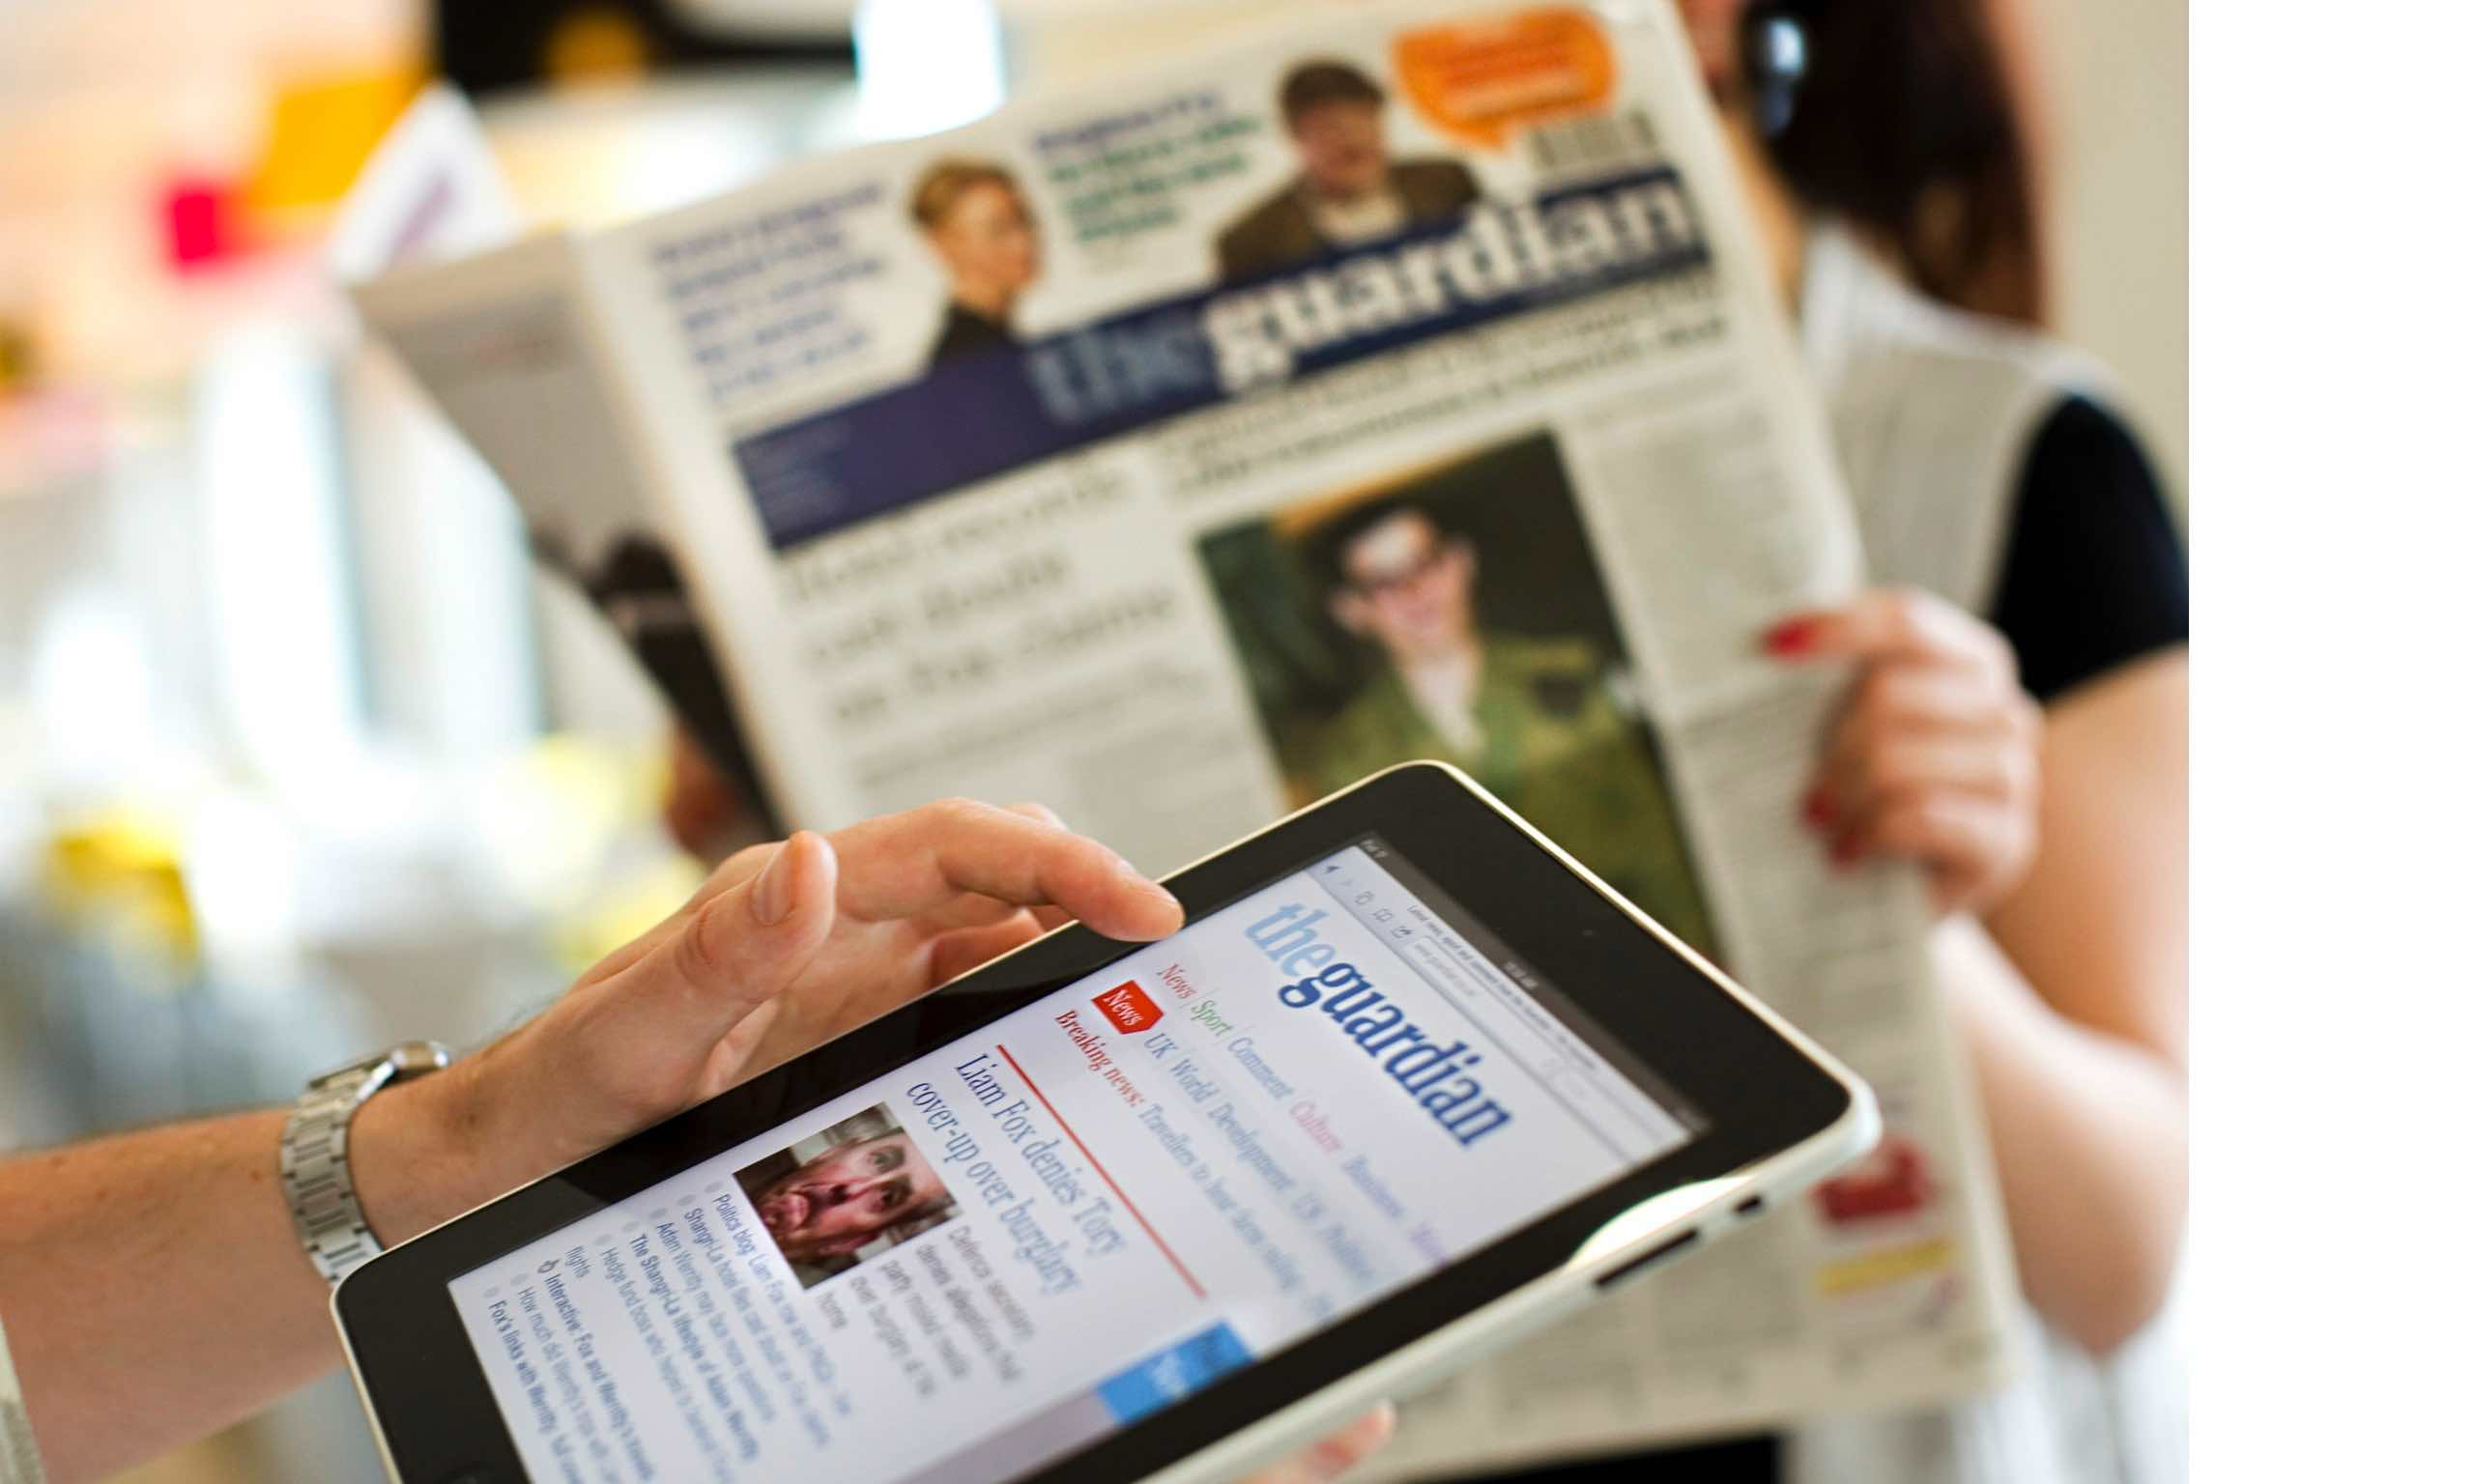 The Guardian newspaper in print on and on ipad.